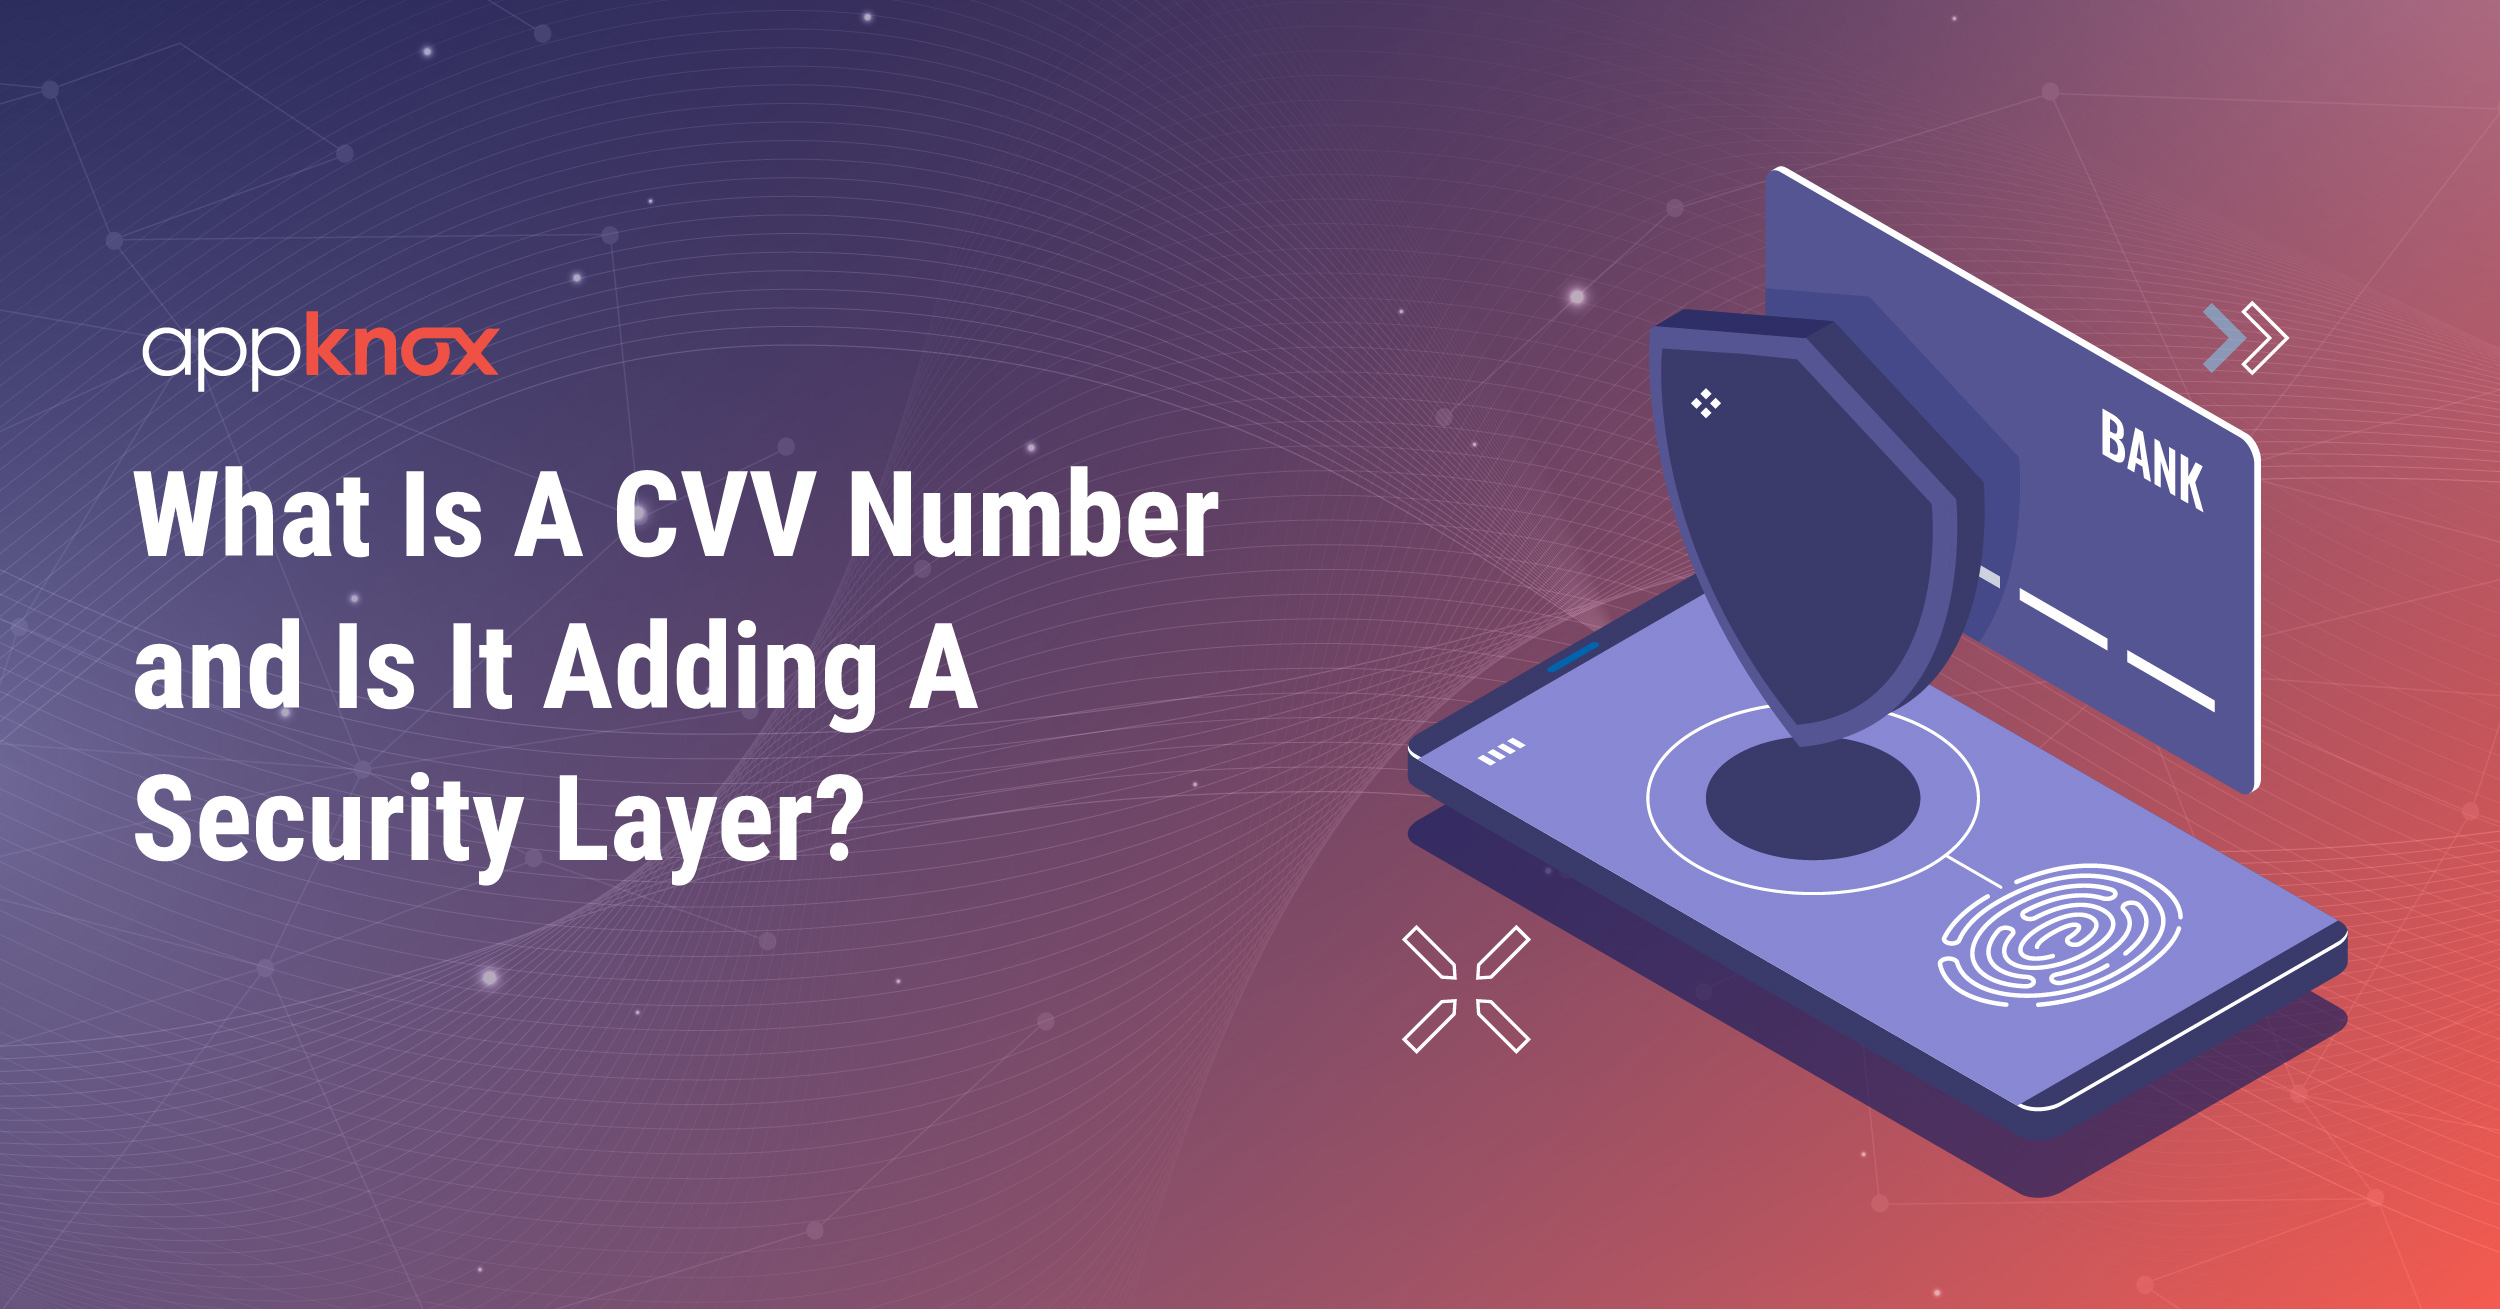 What is a CVV Number and is it adding a security layer?